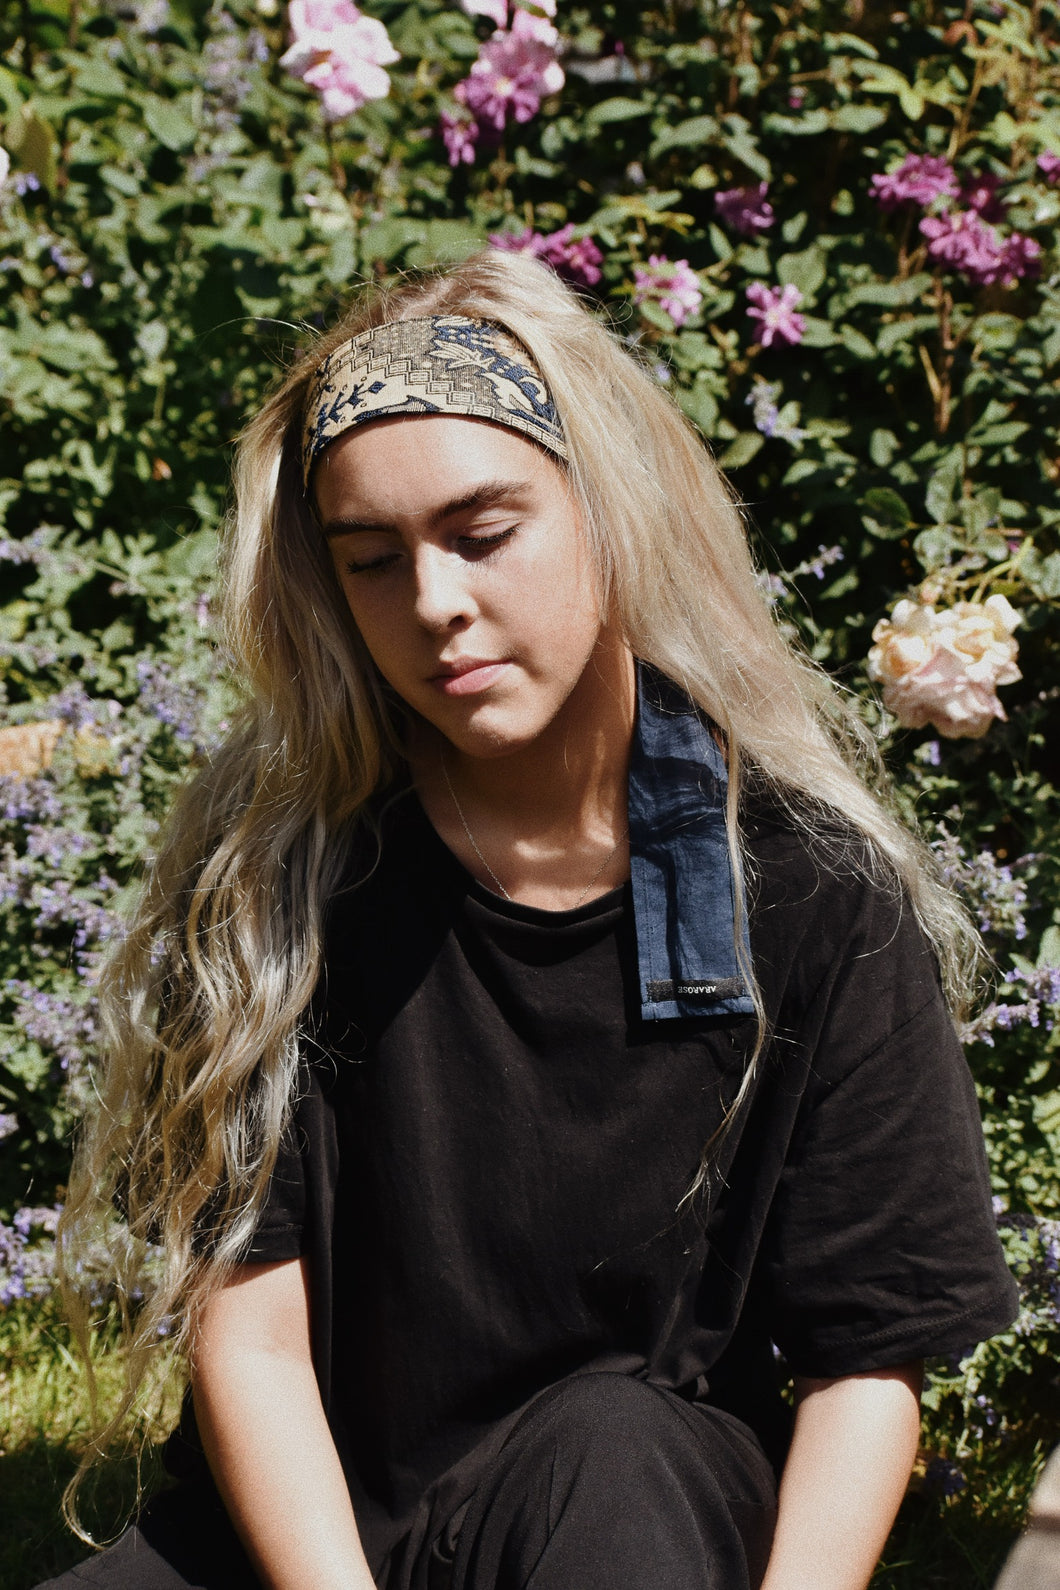 Blonde woman wearing Autumn headband outside in the garden with black t-shirt.